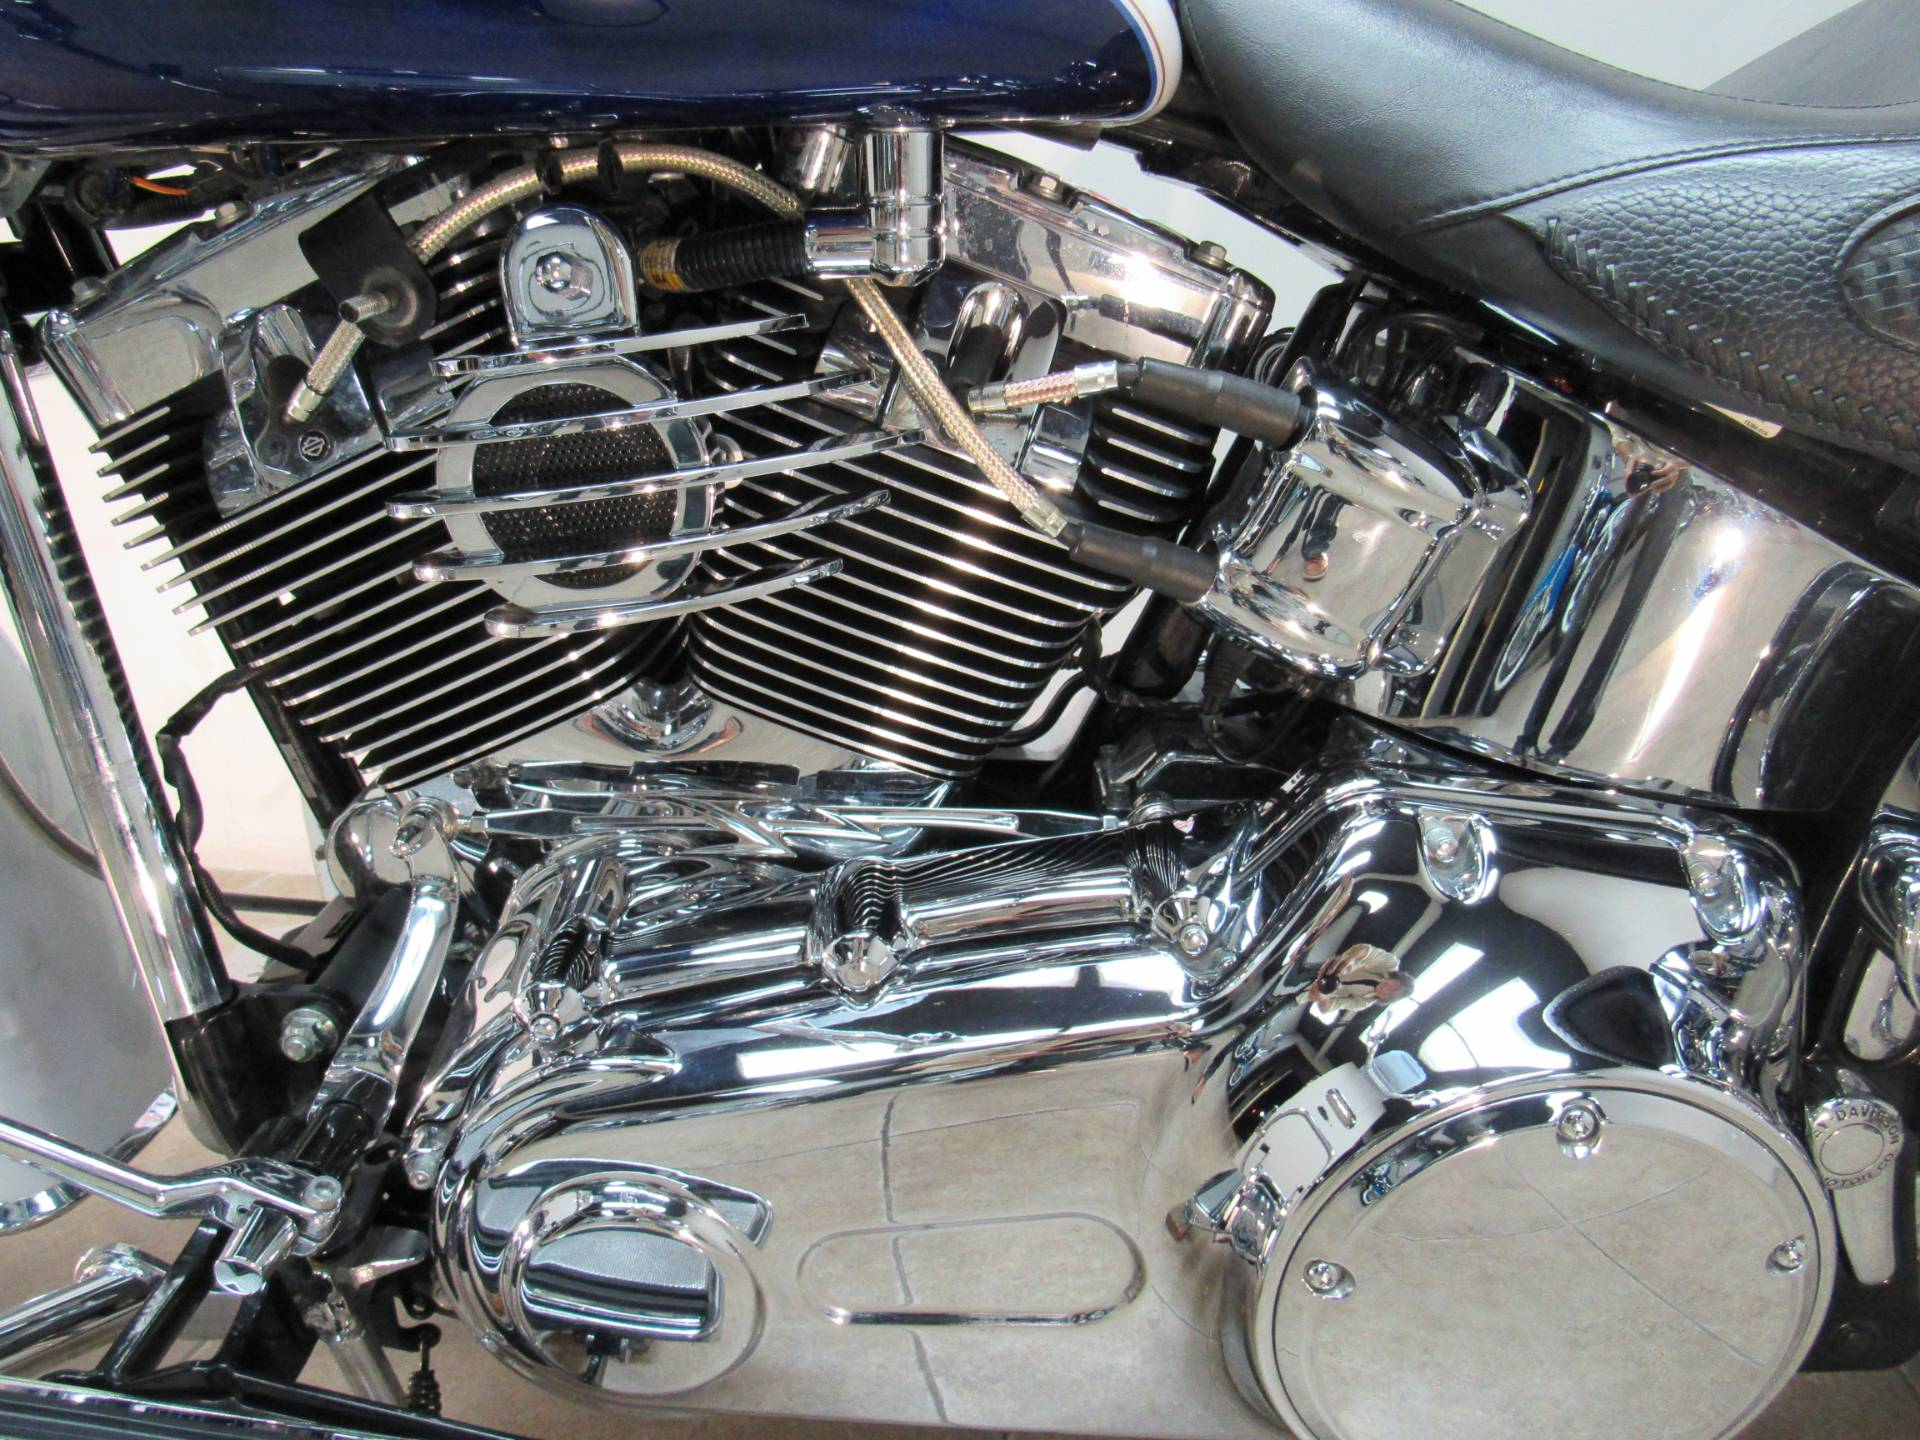 2007 Harley-Davidson Softail® Deluxe in Temecula, California - Photo 15